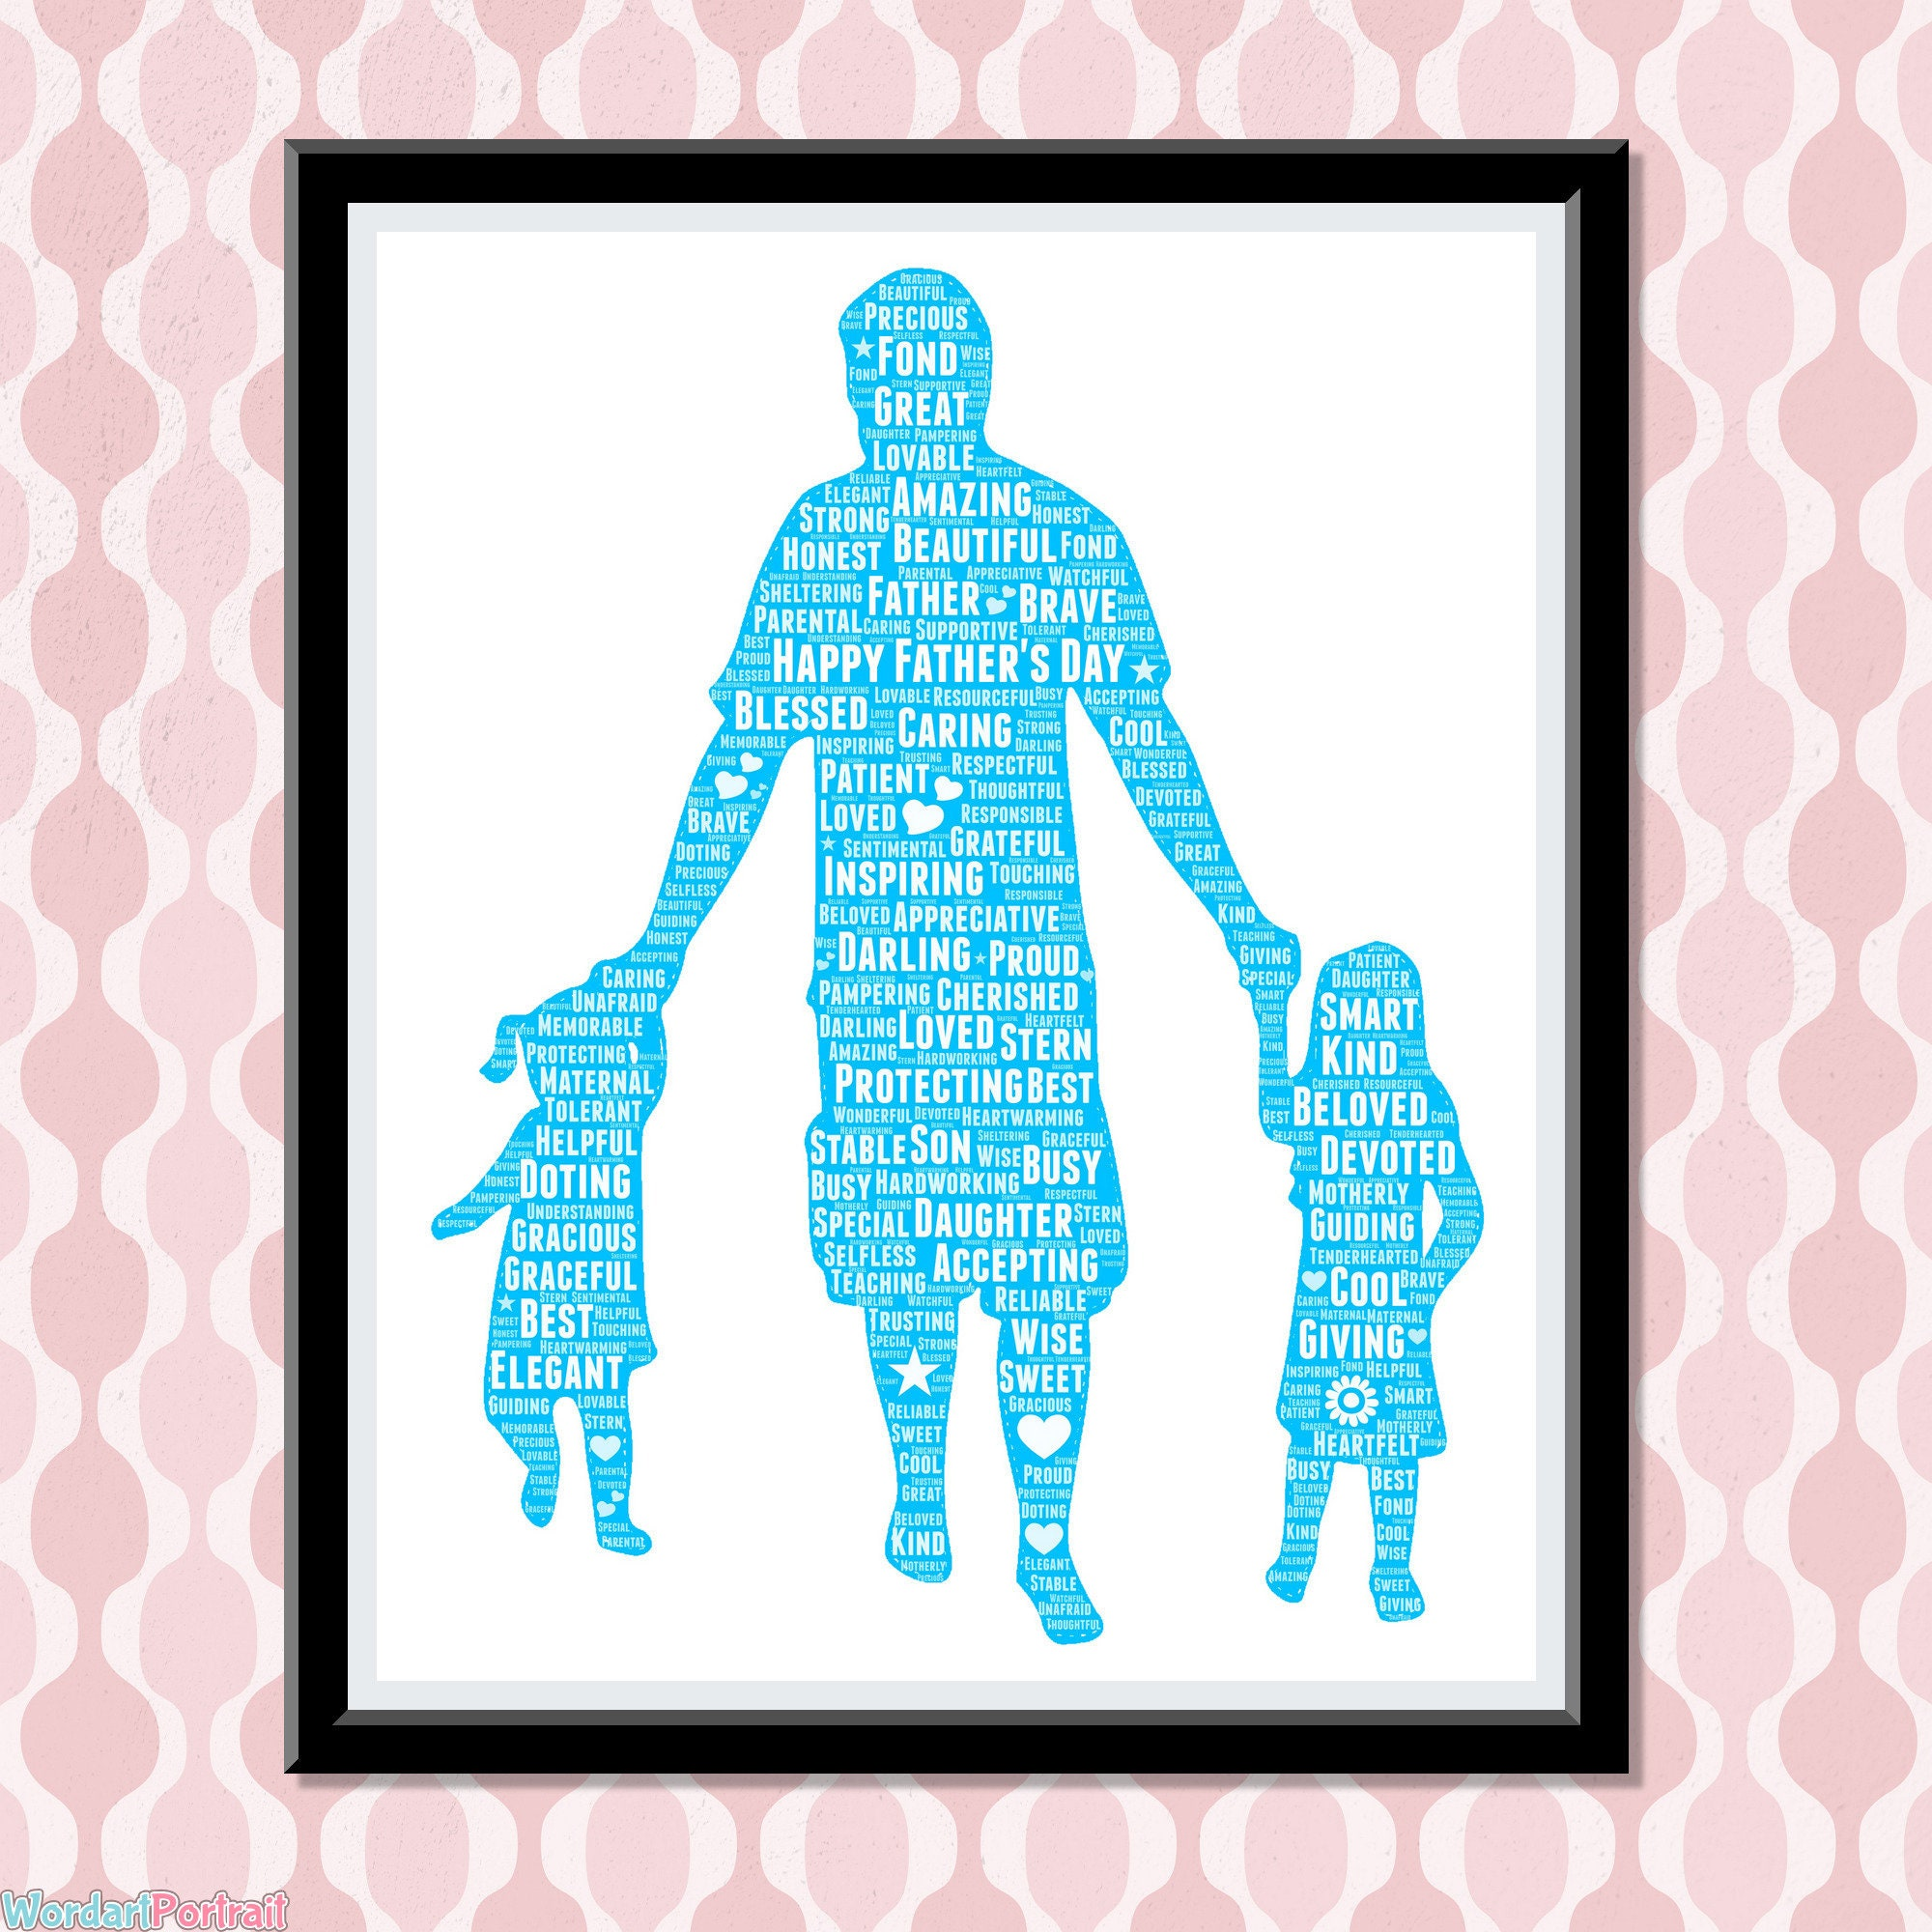 Personalised Fathers Day Gift - Dad with Two Daughters- Personalized Wordle Word Art Print for Dad from Wife Gift from Mom to Daddy son